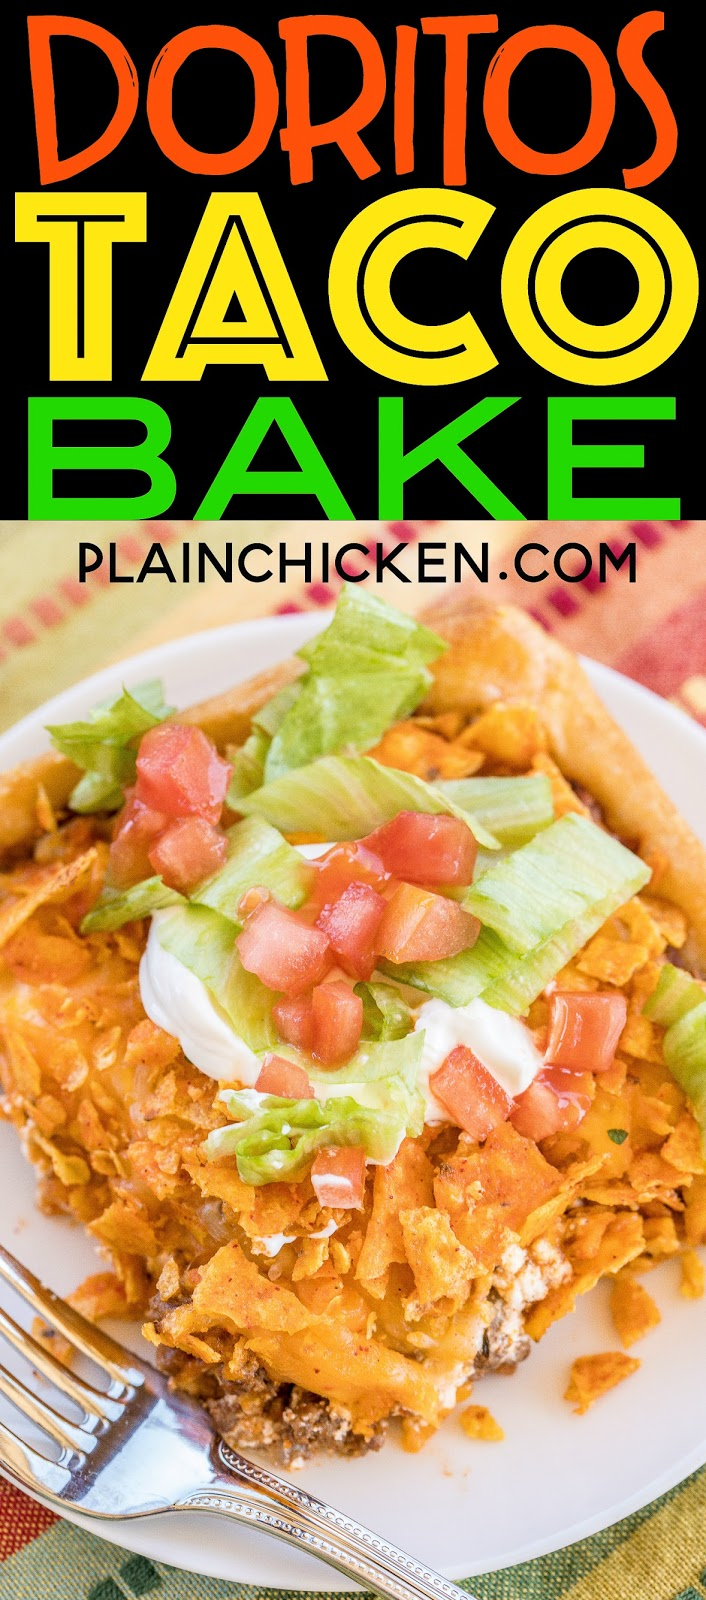 Doritos Taco Bake - OMG! SO good! crescent rolls topped with taco meat, tomato sauce, sour cream, cheese and doritos! Kids gobble this up! Ready in 30 minutes. Quick,easy, kid friendly and delicious! You can't beat it! #mexican #casserole #Doritos #kidfriendly